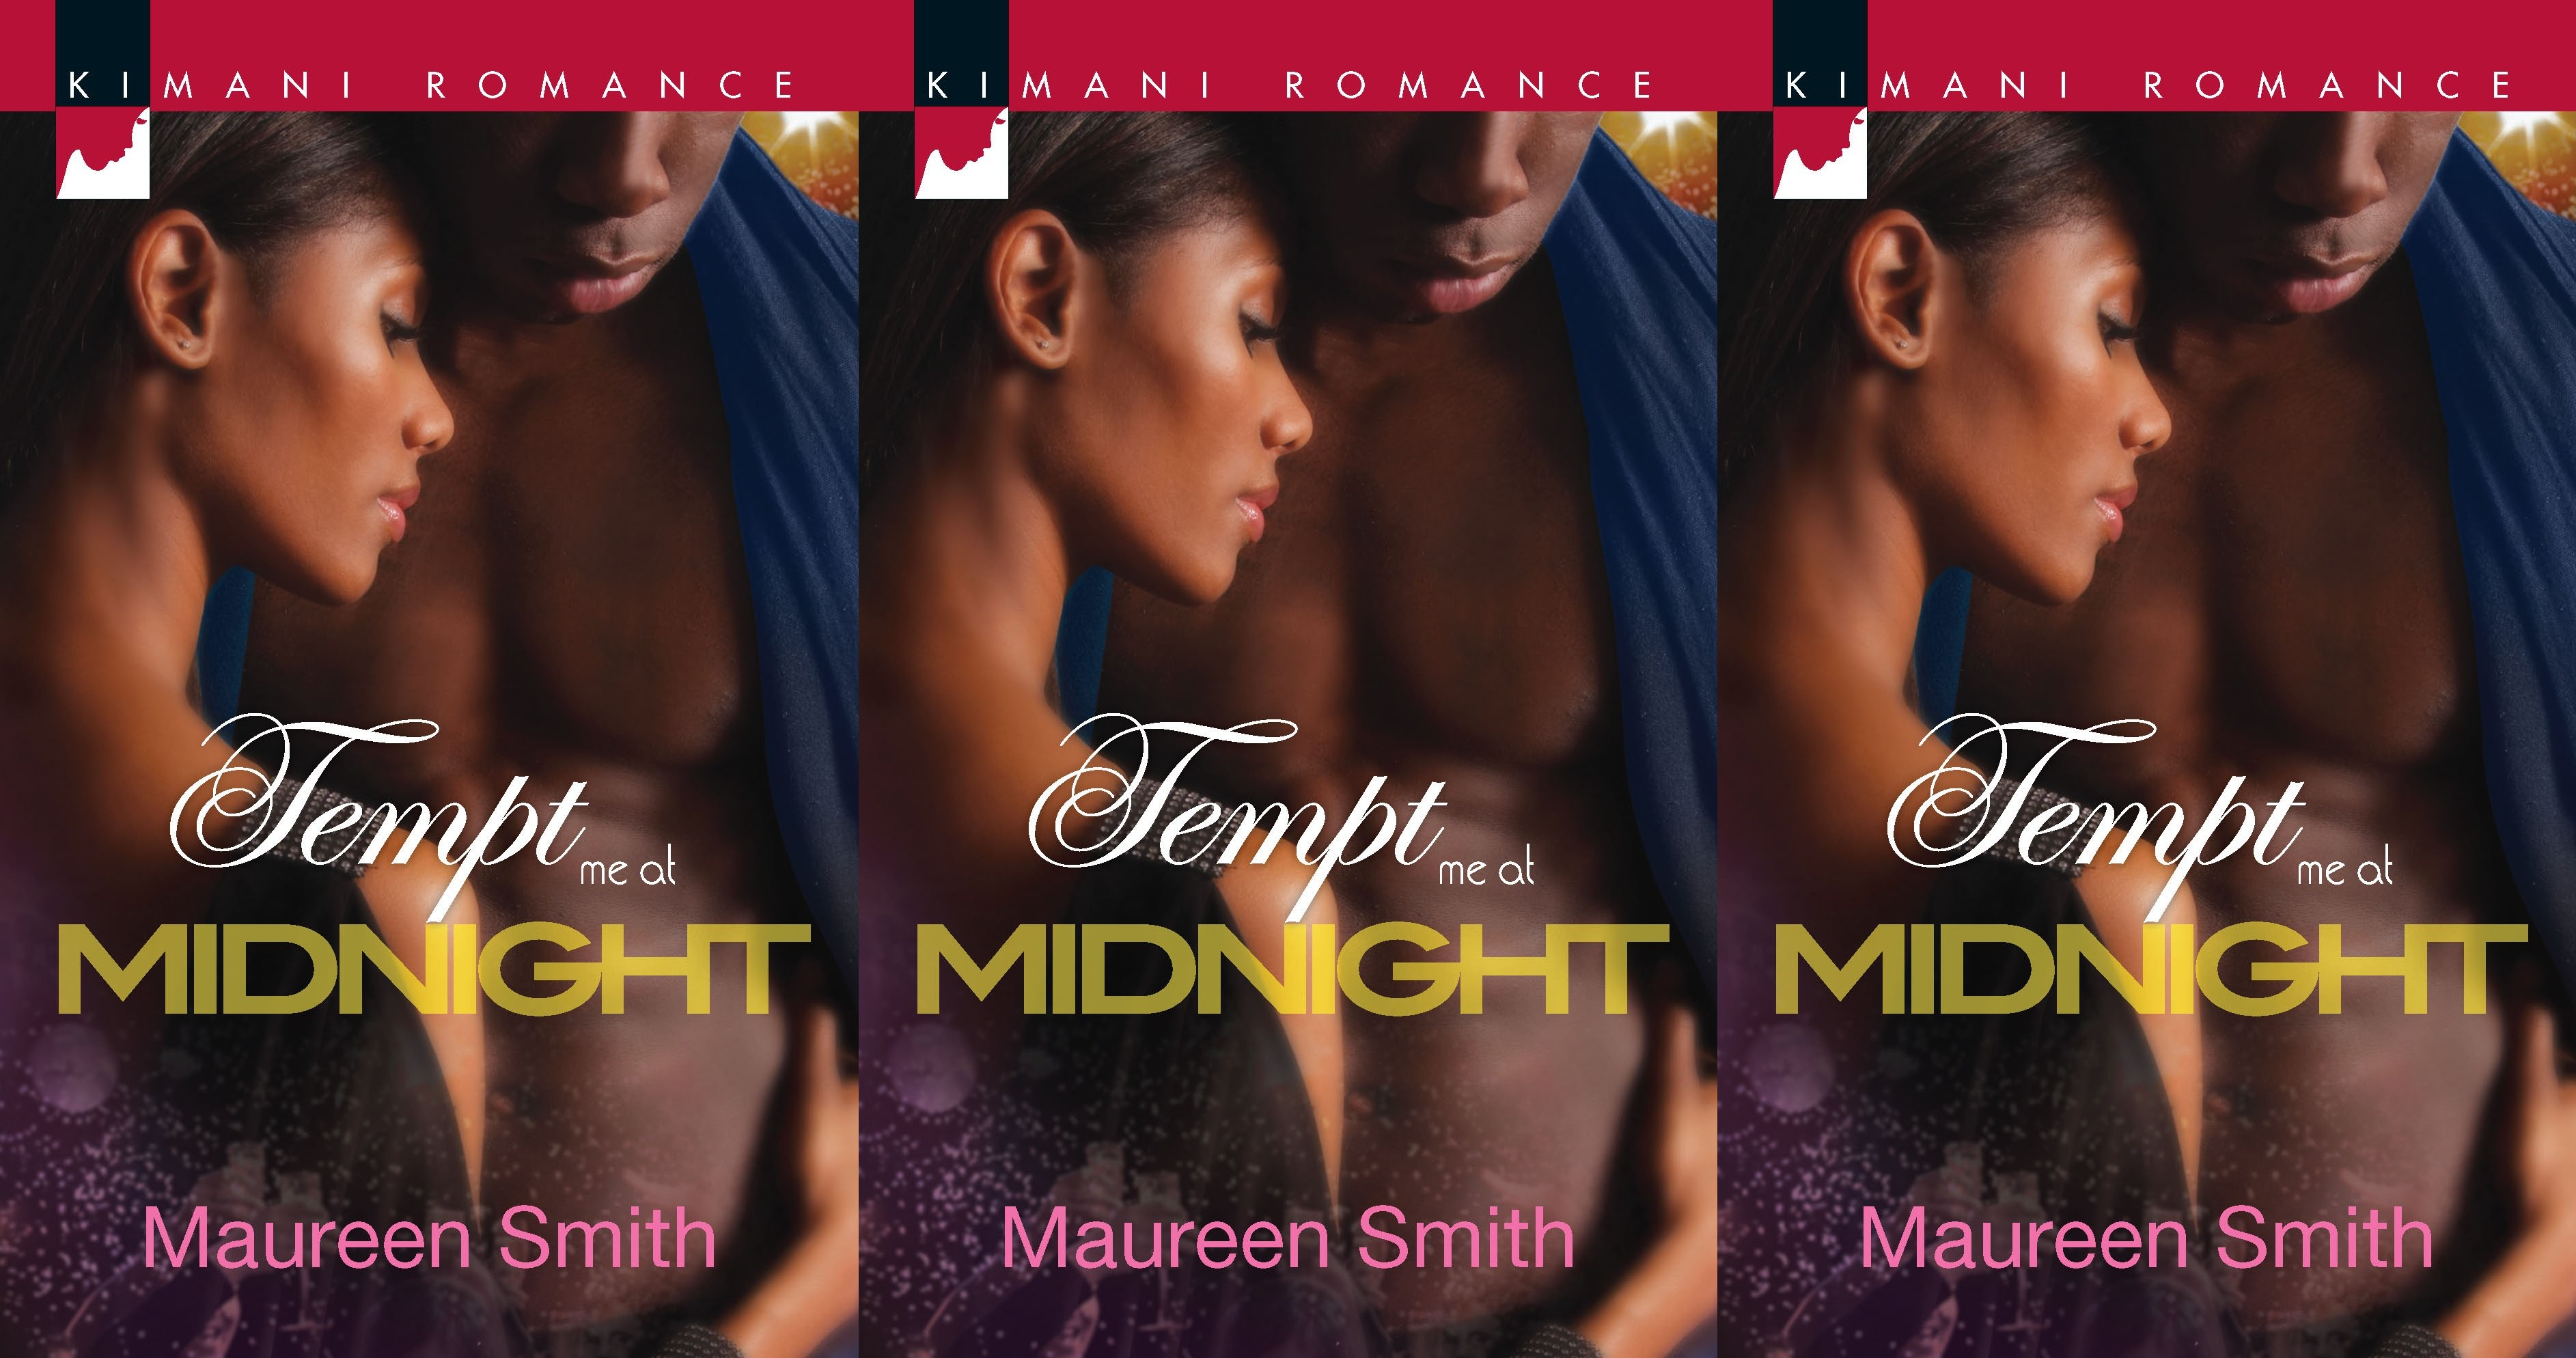 new year's romance novels, tempt me at midnight by maureen smith, books